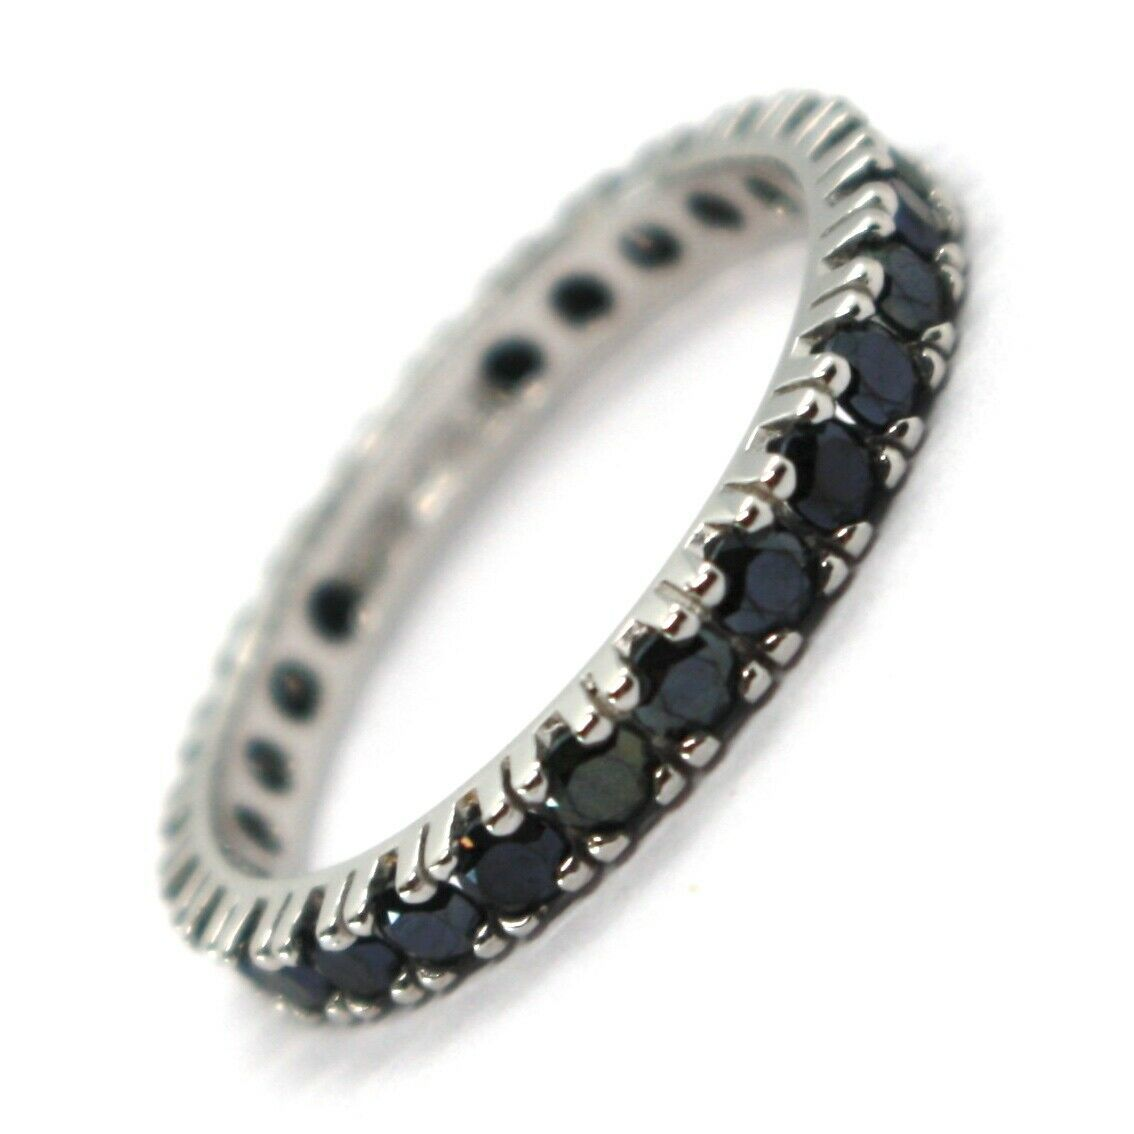 18K WHITE GOLD ETERNITY BAND RING, BLACK CUBIC ZIRCONIA, THICKNESS 3 MM